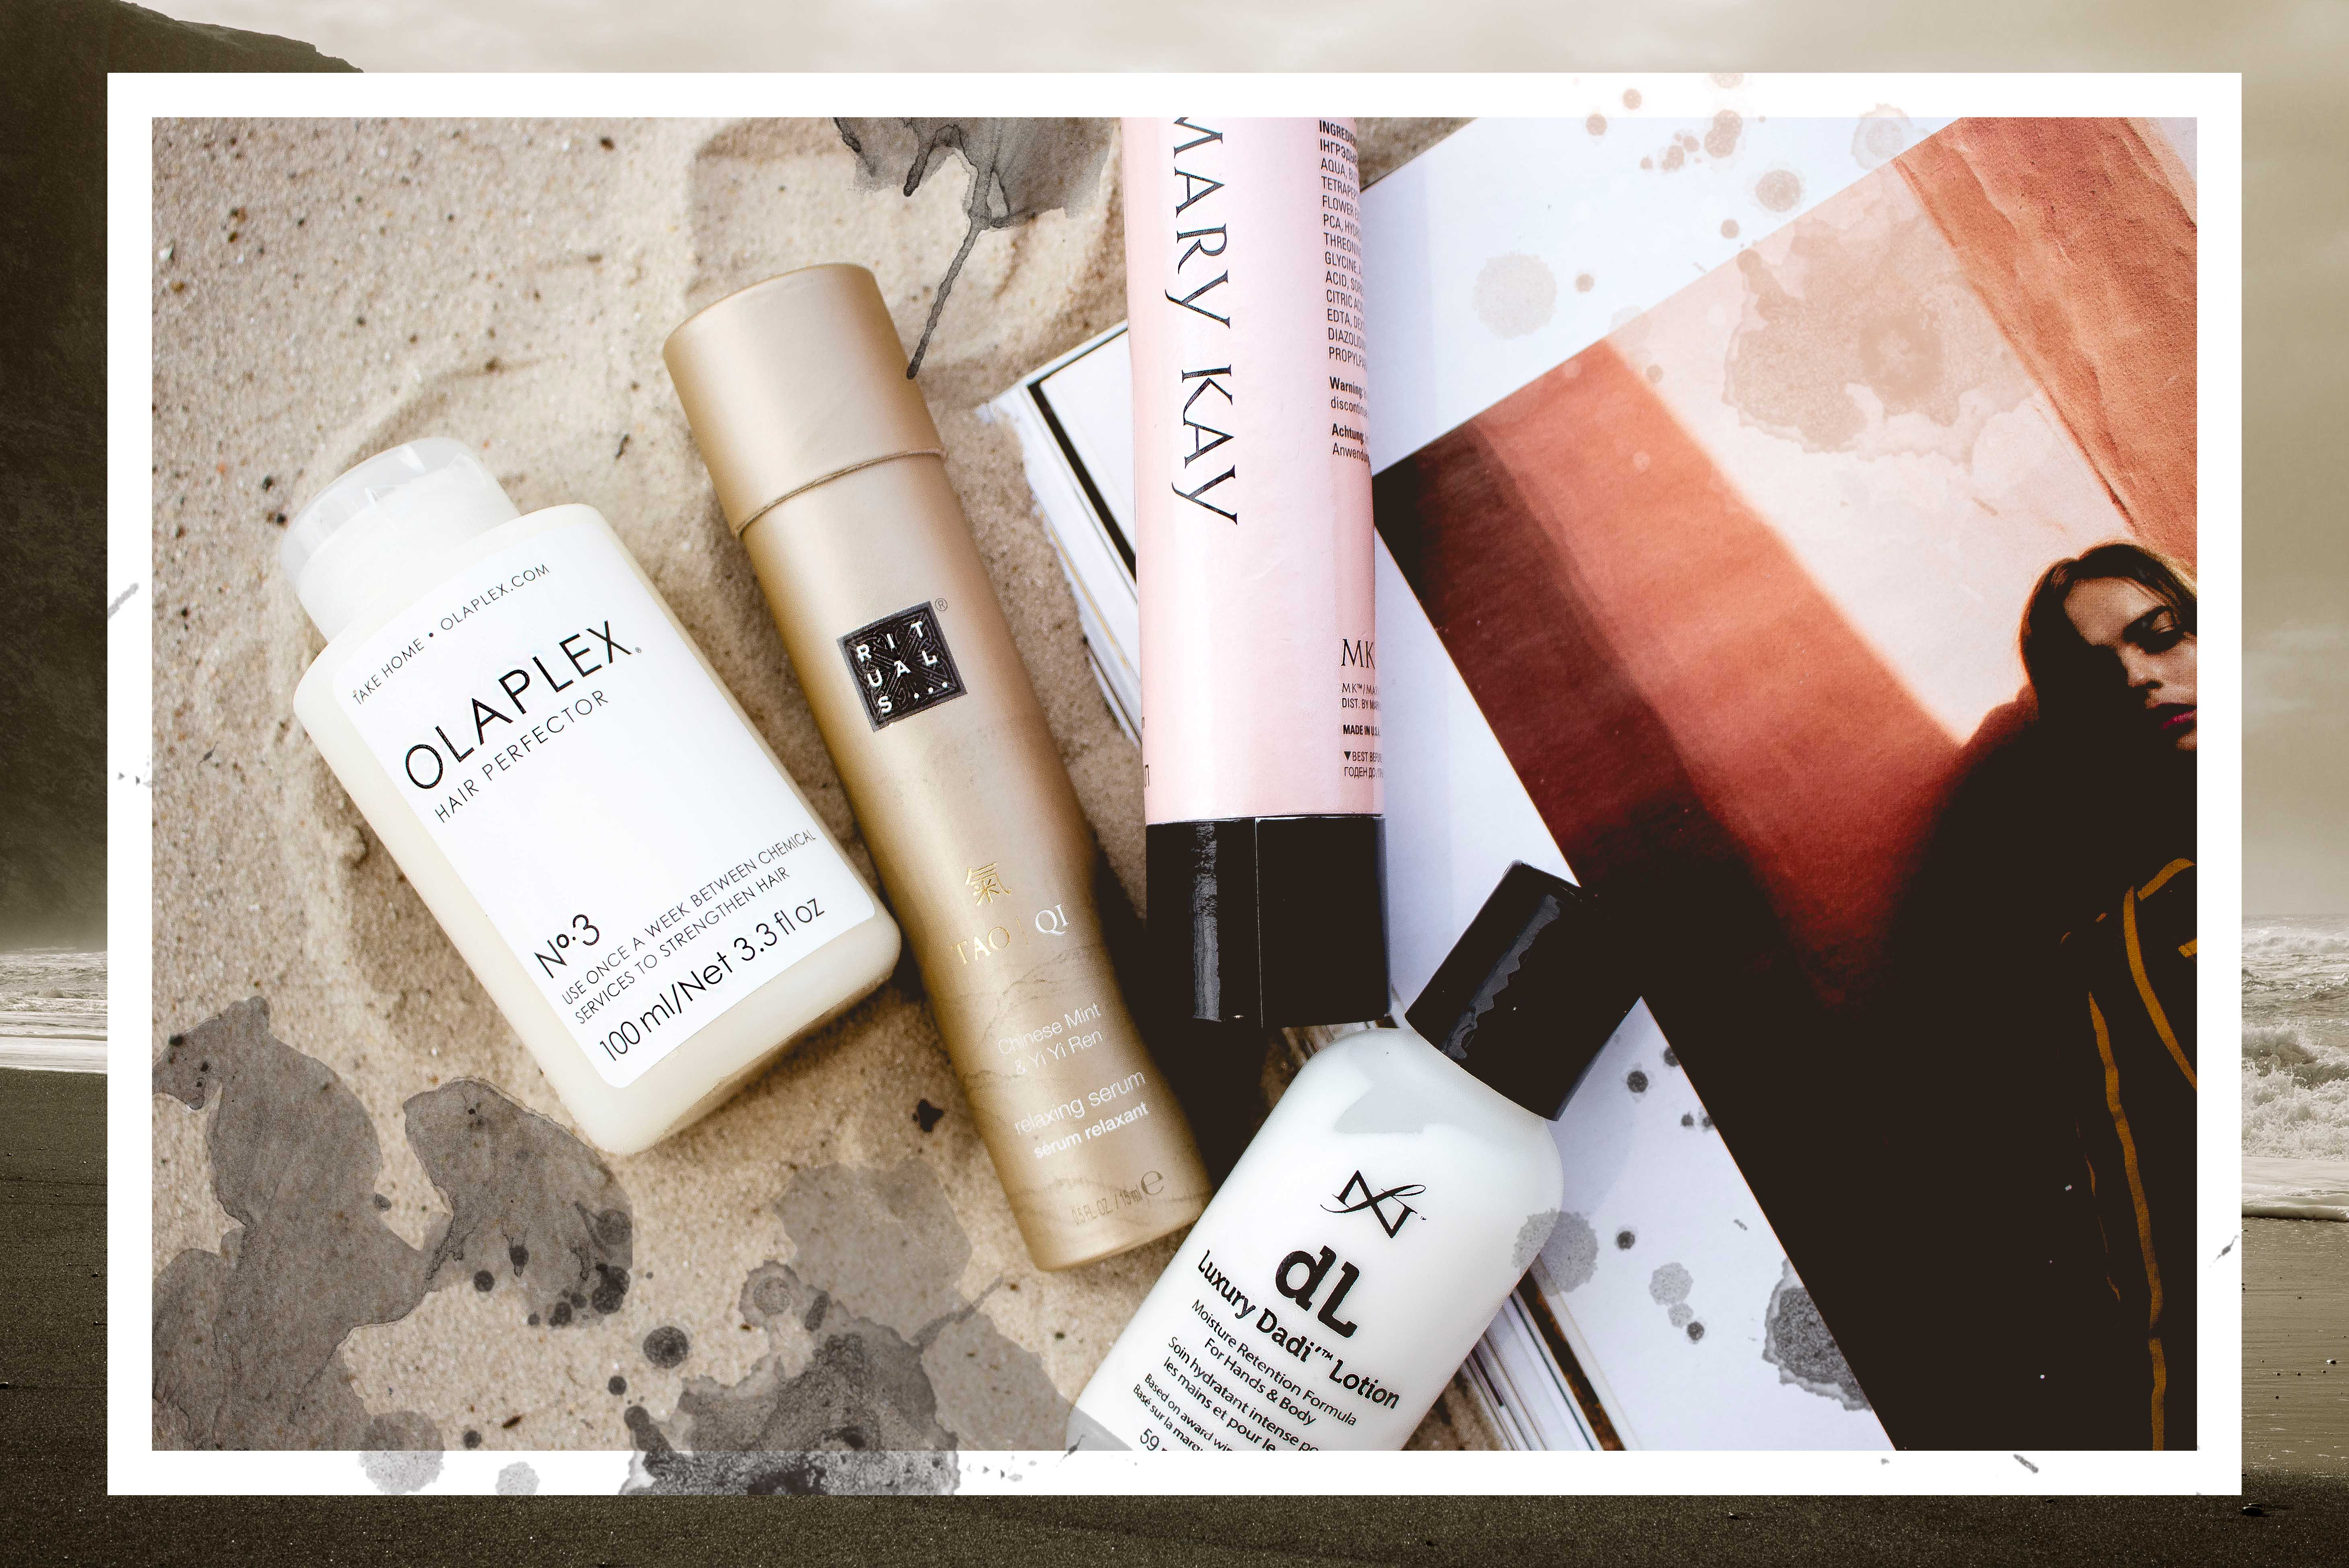 Beauty-produkte-blog-influencer-juni-favoriten